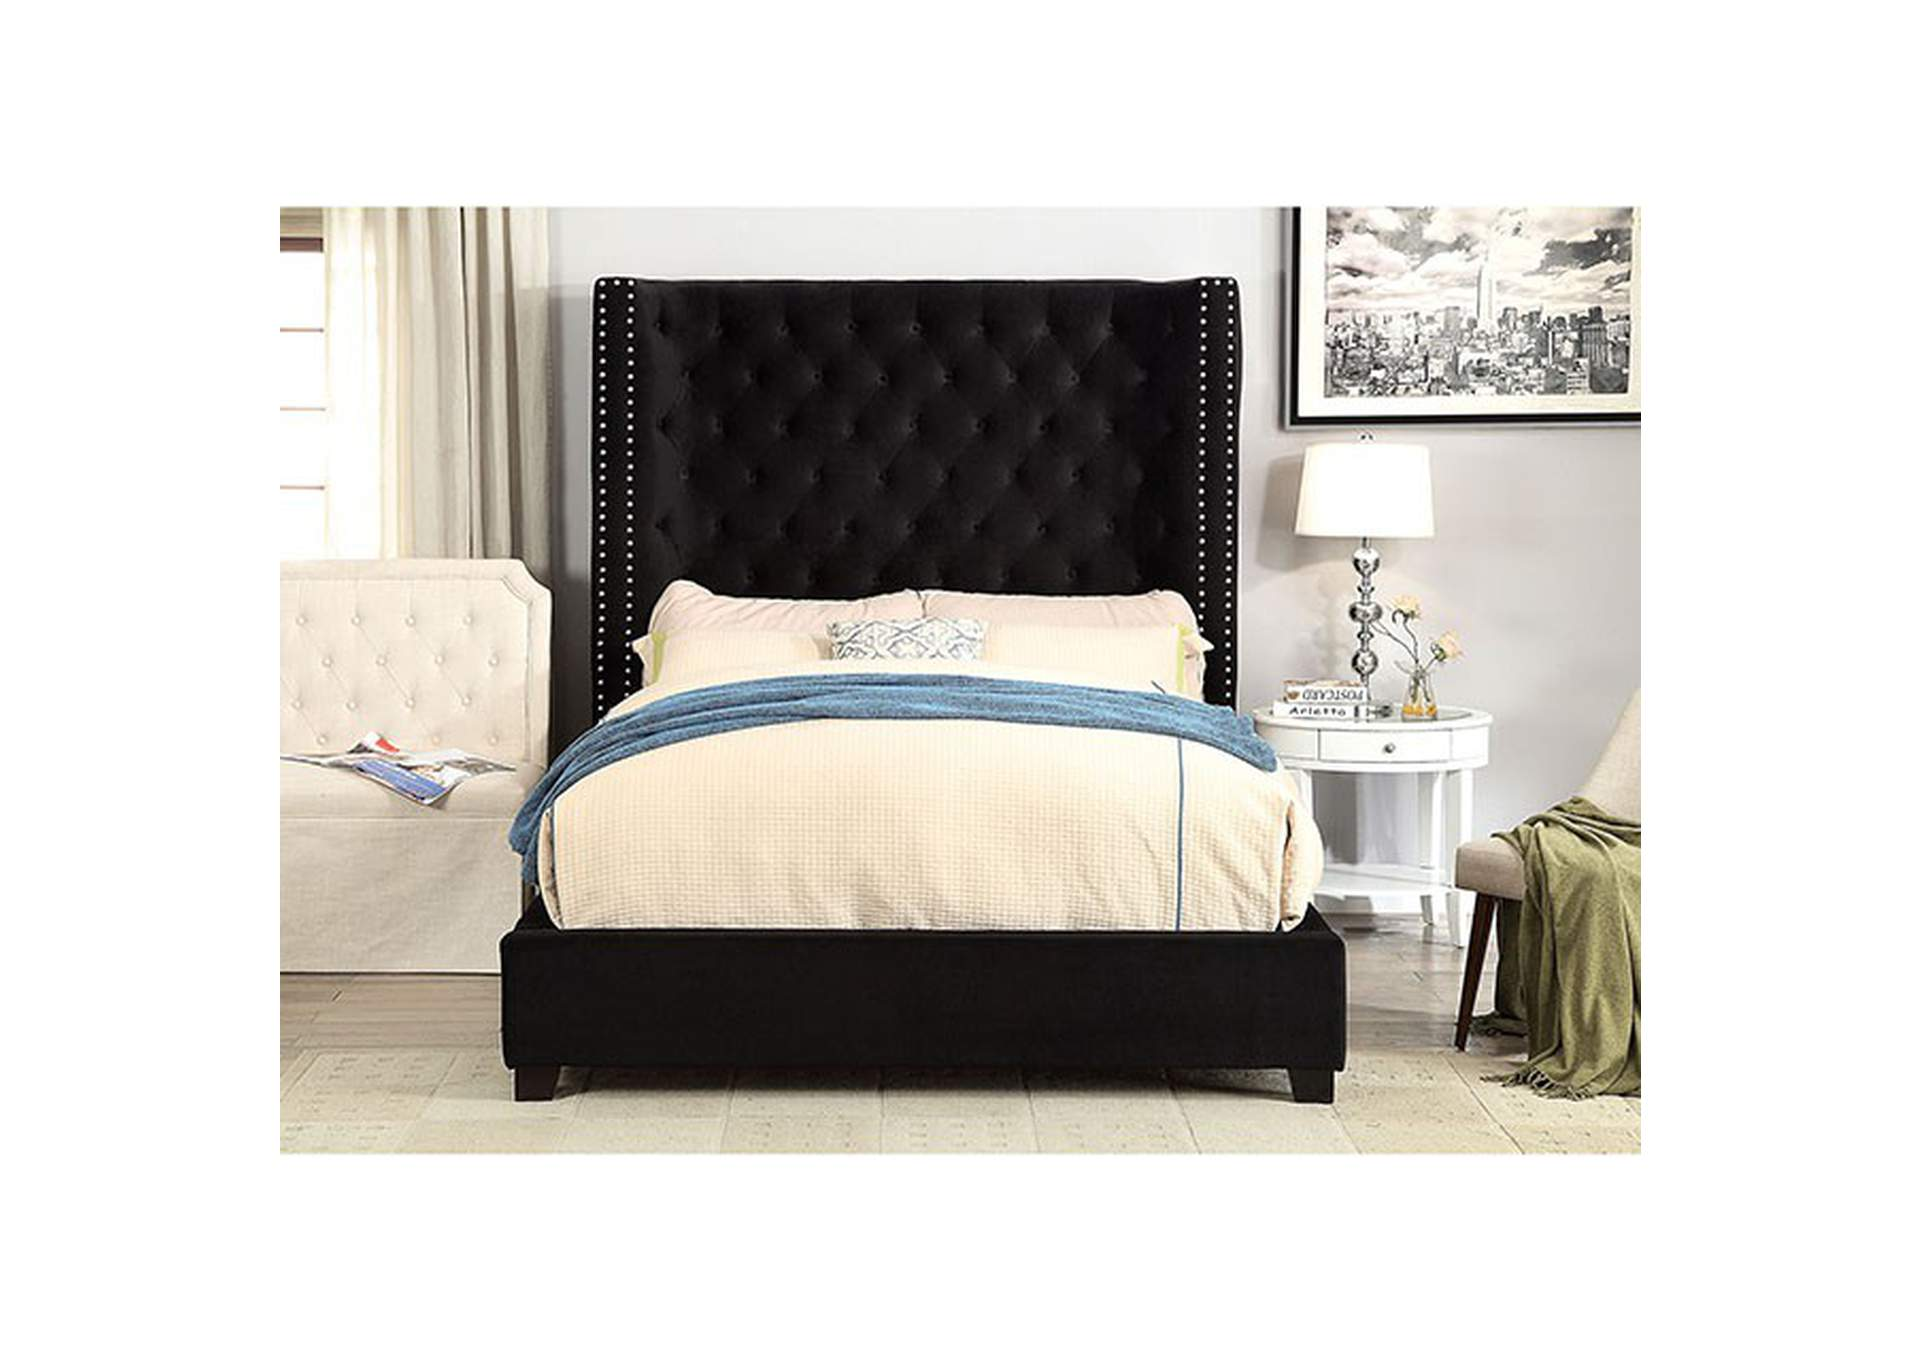 Mirabelle Black Upholstered California Bed,Furniture of America